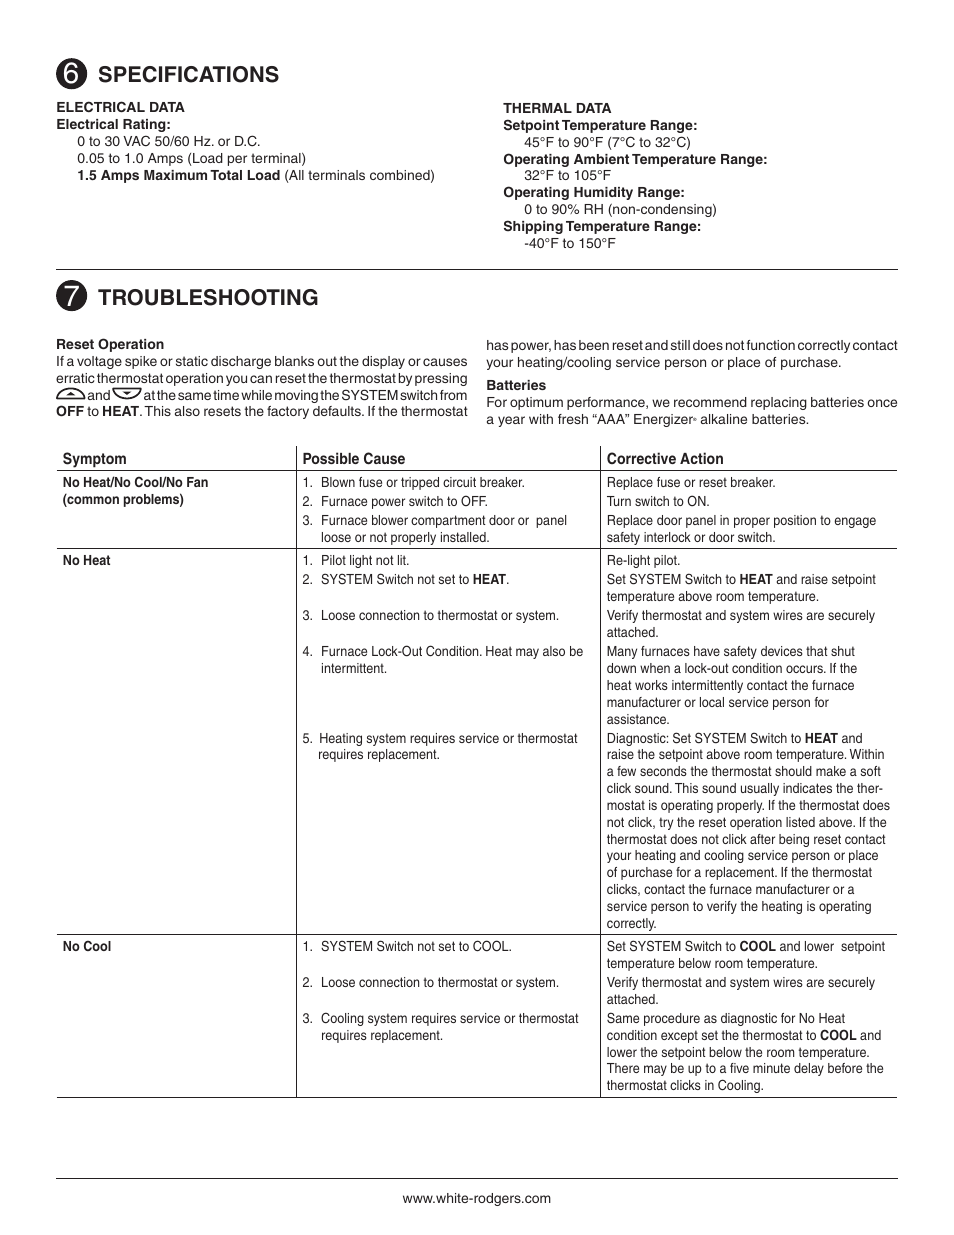 Specifications  Troubleshooting